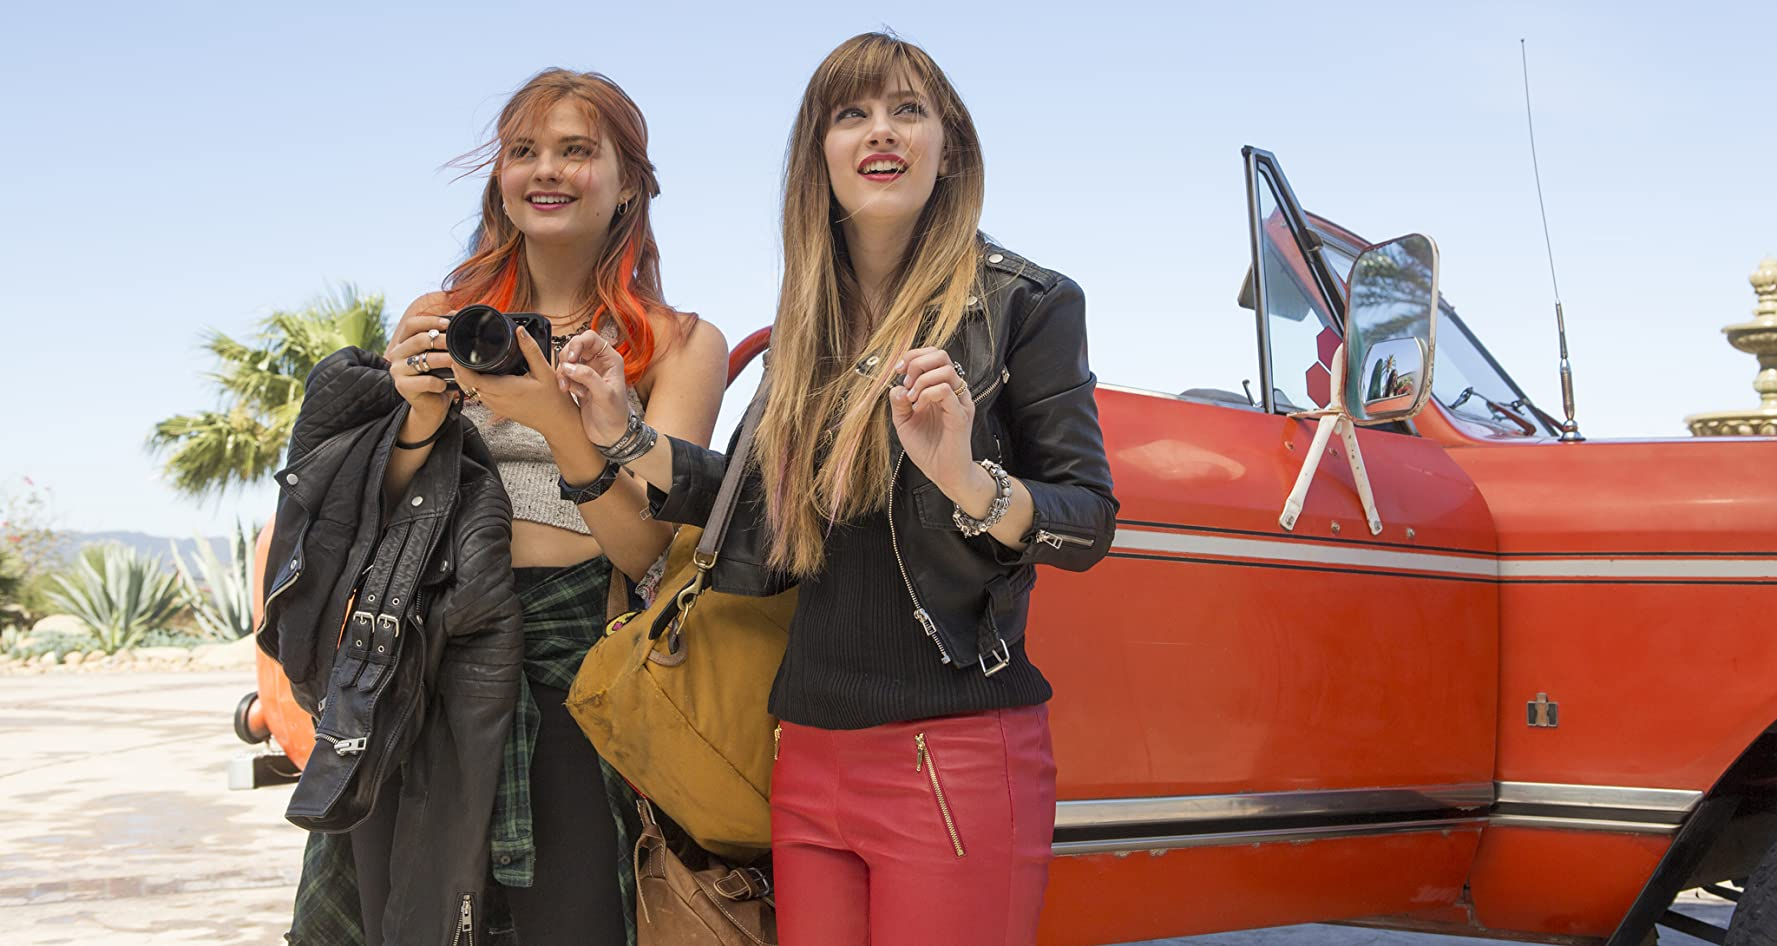 Stefanie Scott and Aubrey Peeples in Jem and the Holograms (2015)